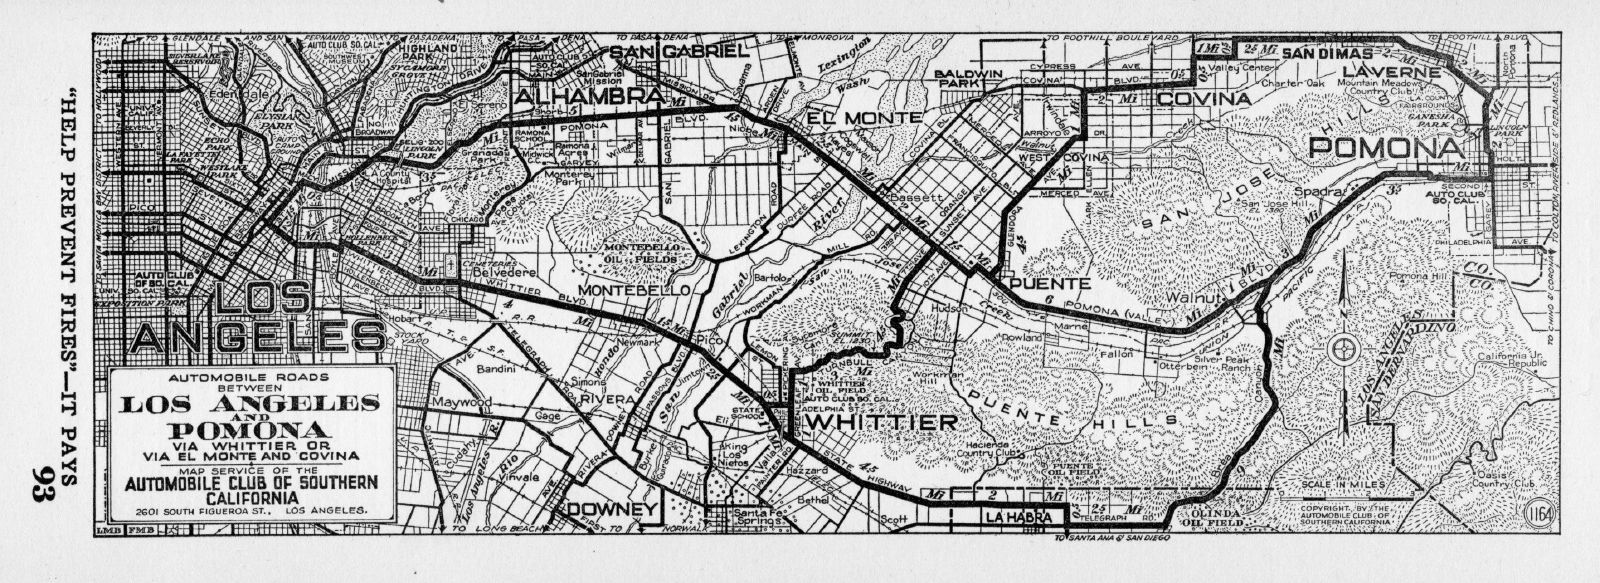 street map of los angeles california